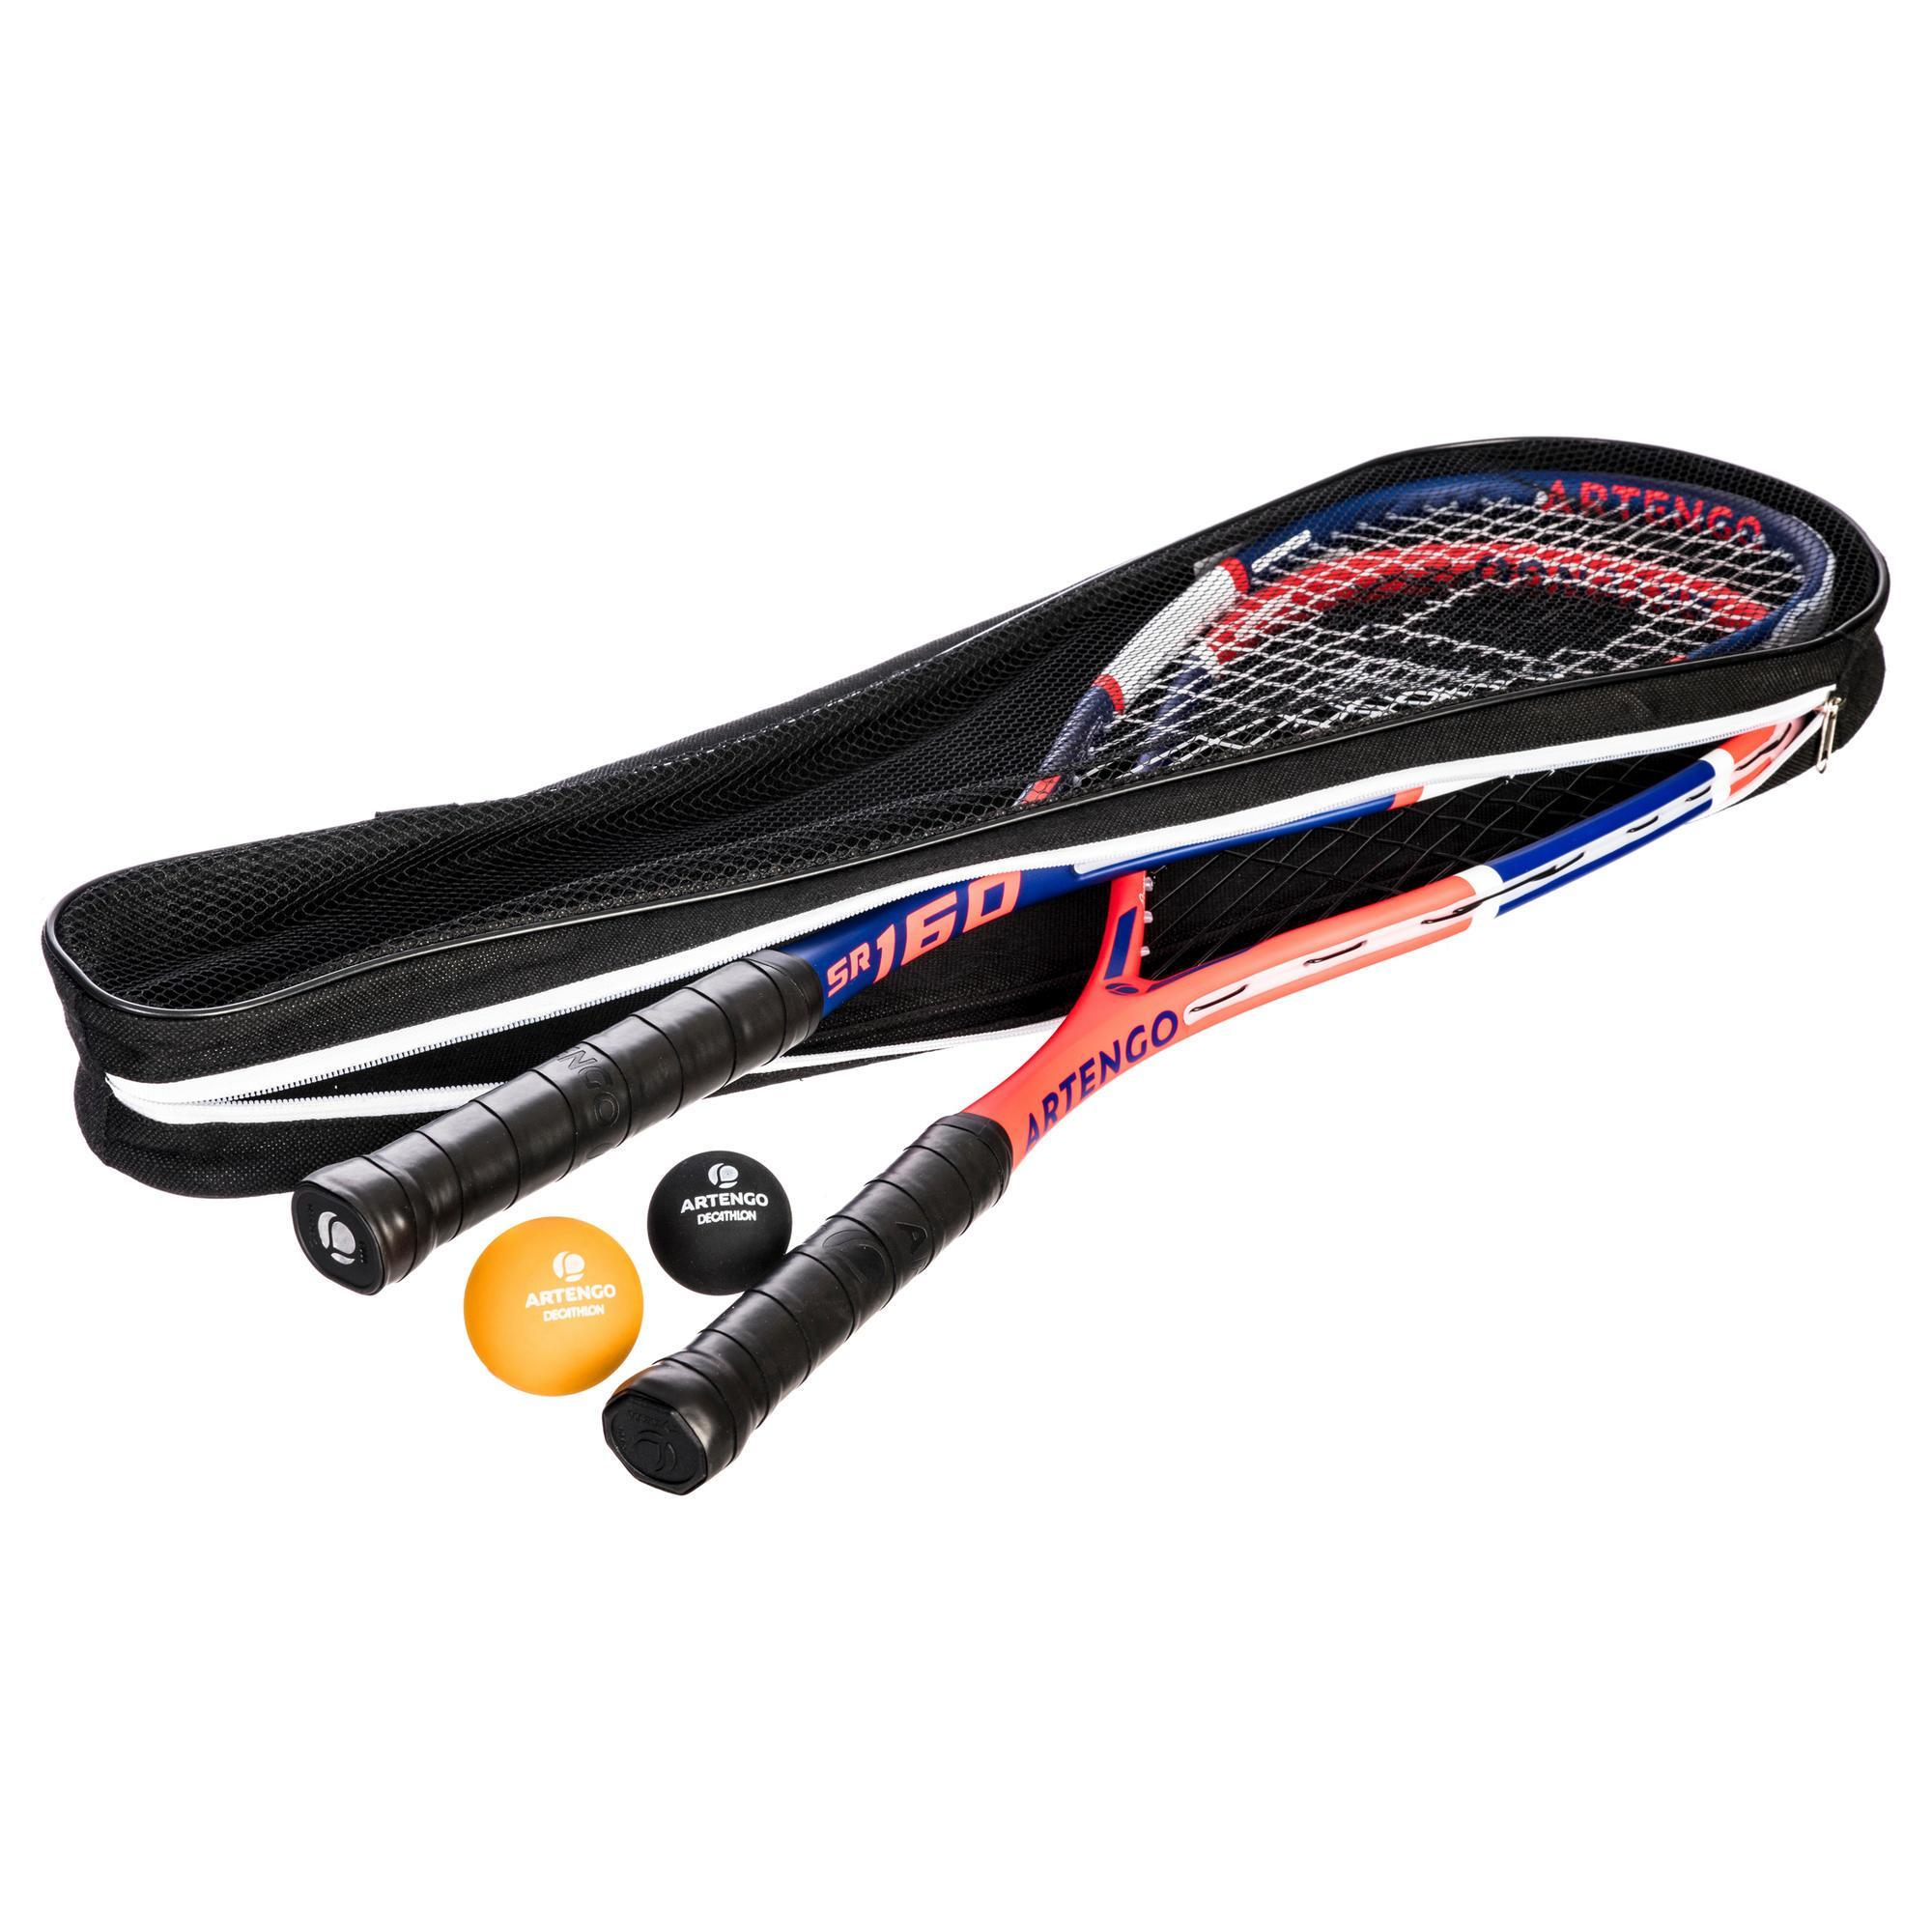 597293dd9773bc Artengo SET SQUASHRACKET SR 160 FAMILY (2 RACKETS